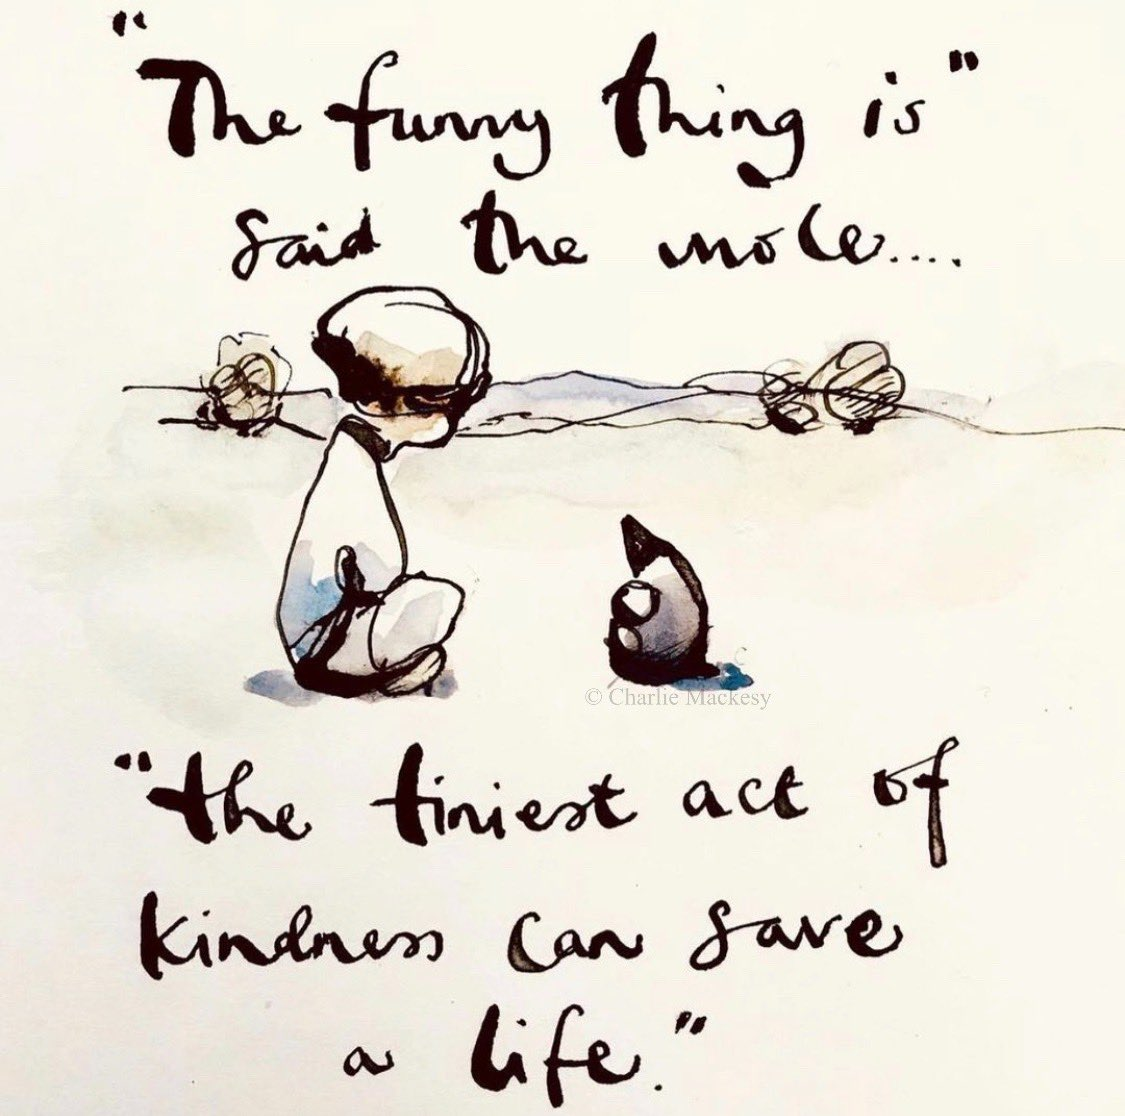 It's World Kindness Day.